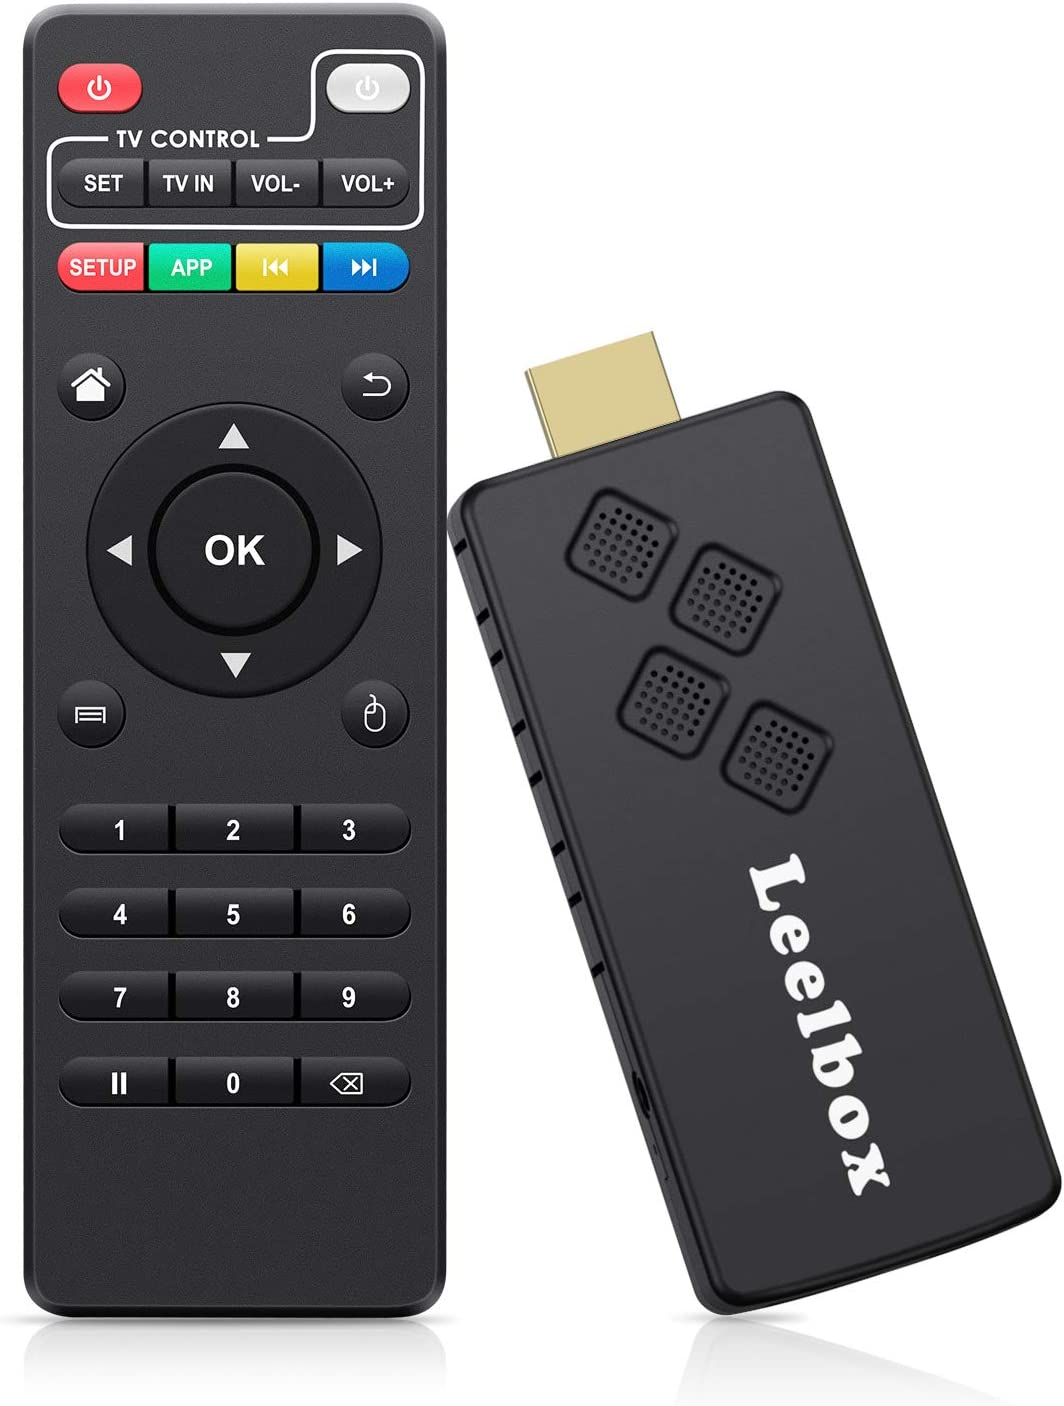 Leelbox TV Stick Android TV Box Portátil 2GB/16GB con Dolby/Full HD/ 2.4G WiFi/ 3D/4K/H.265 Streaming Media Player: Amazon.es: Electrónica